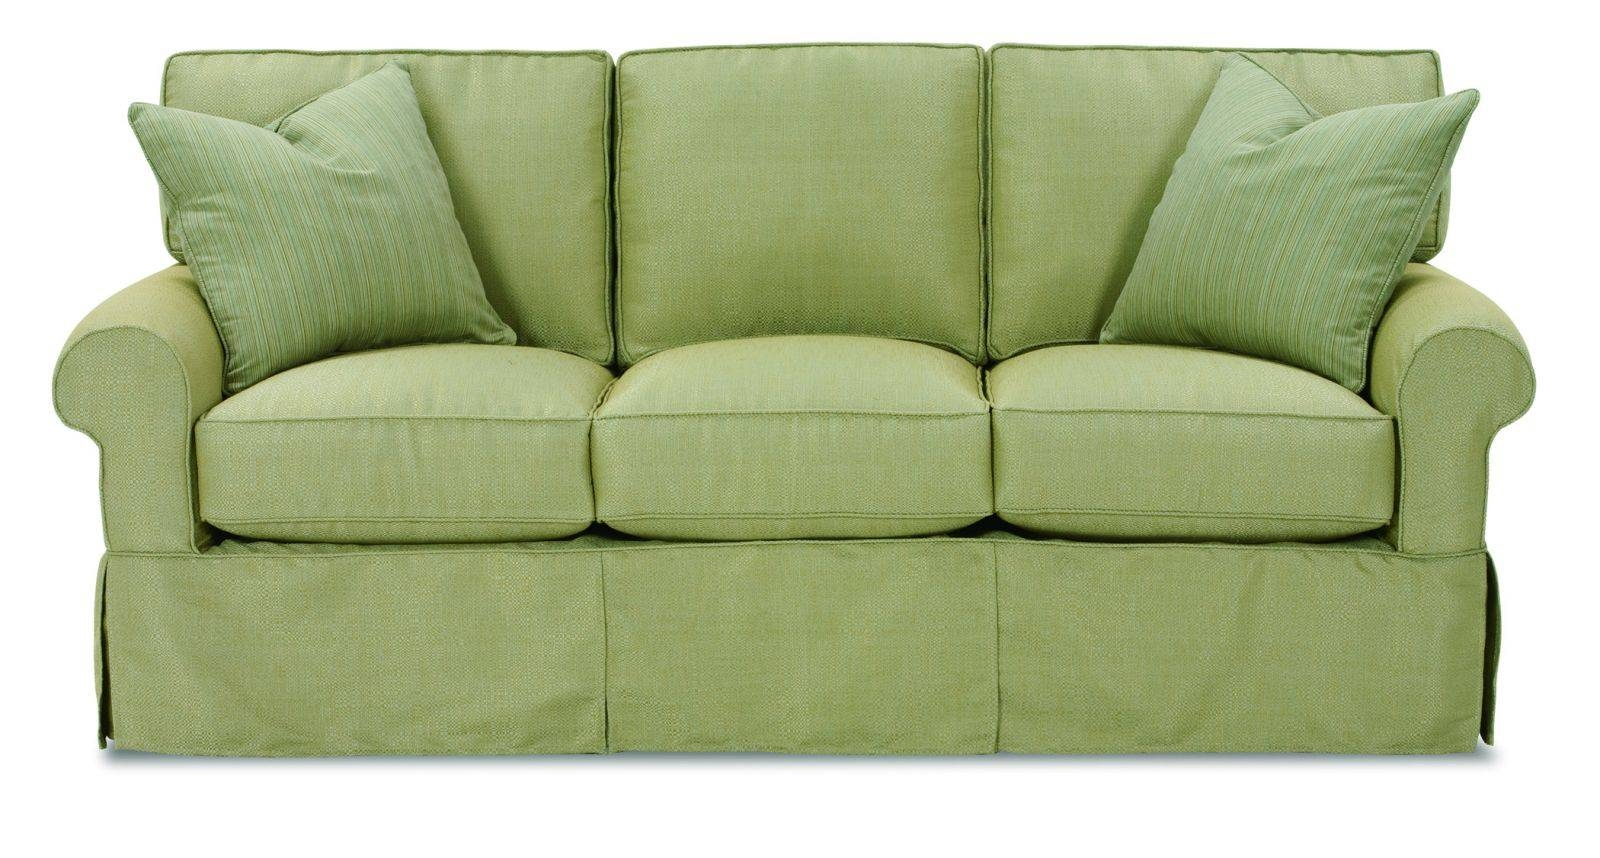 Fresh Slipcover Sofas 67 For Contemporary Sofa Inspiration With throughout Contemporary Sofa Slipcovers (Image 12 of 30)